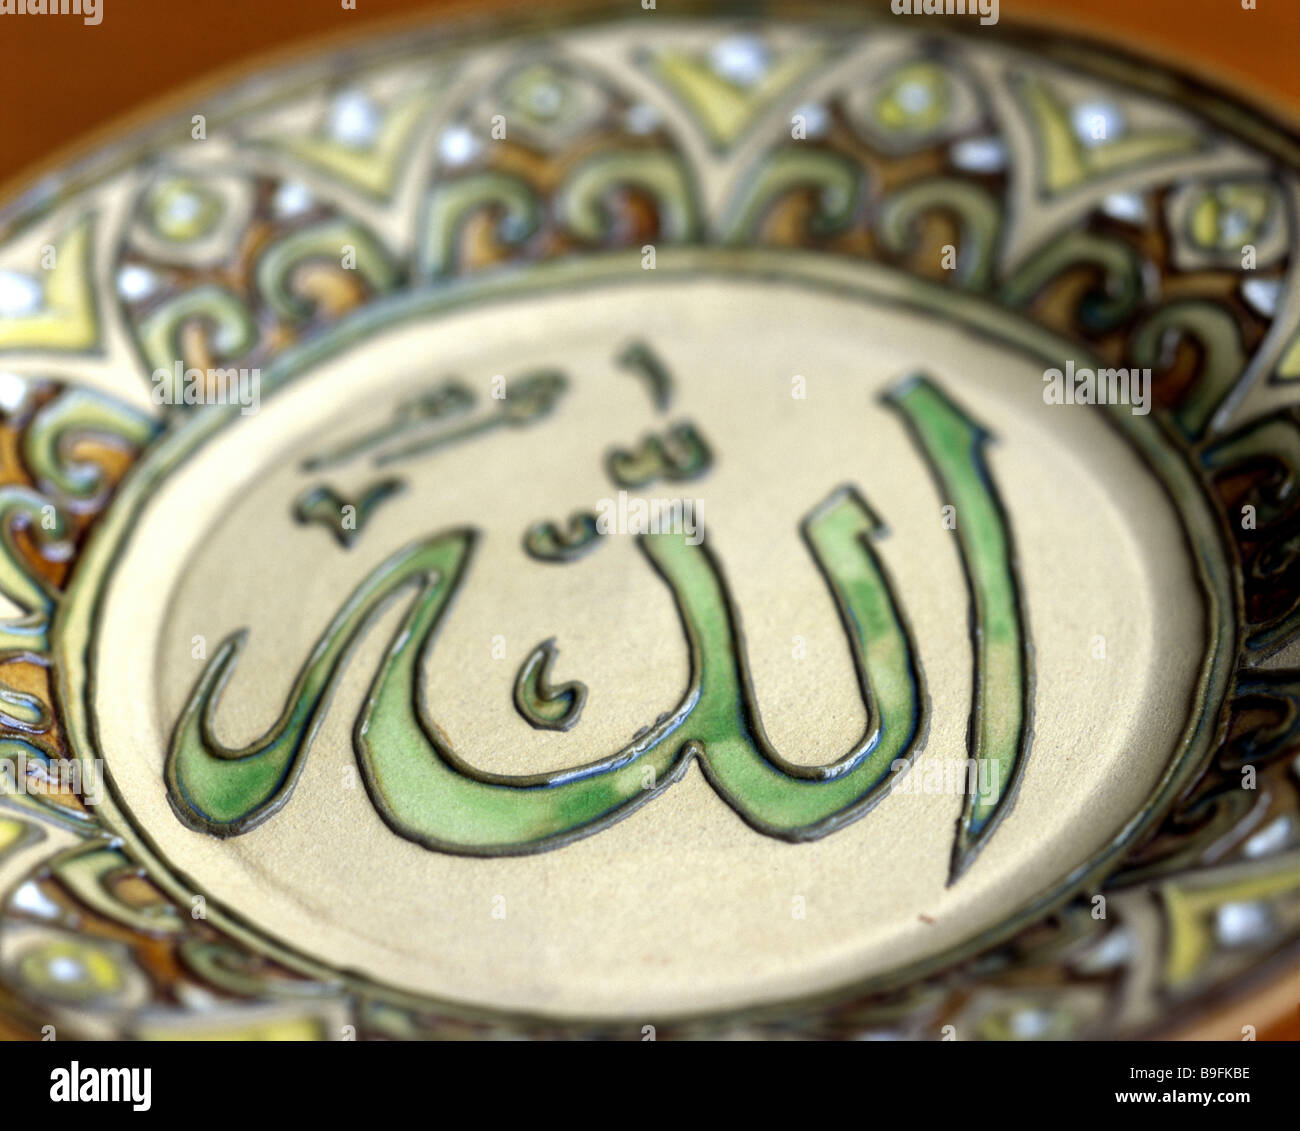 Arabic Calligraphy Stock Photos Amp Arabic Calligraphy Stock